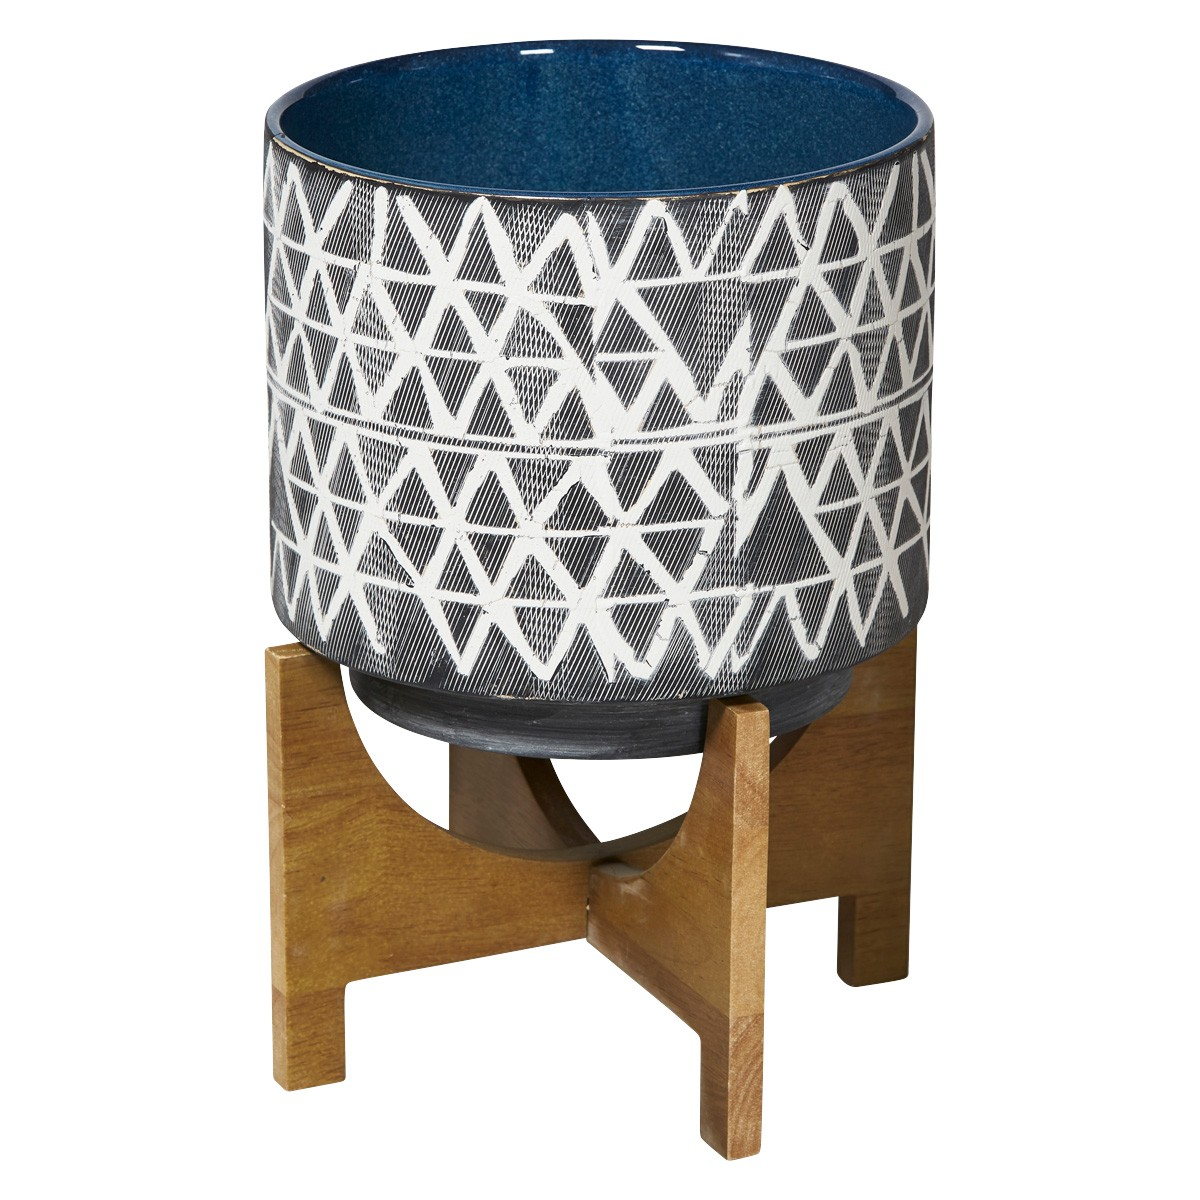 Platania Ceramic Pot Planter on Wood Stand, Large, Charcoal